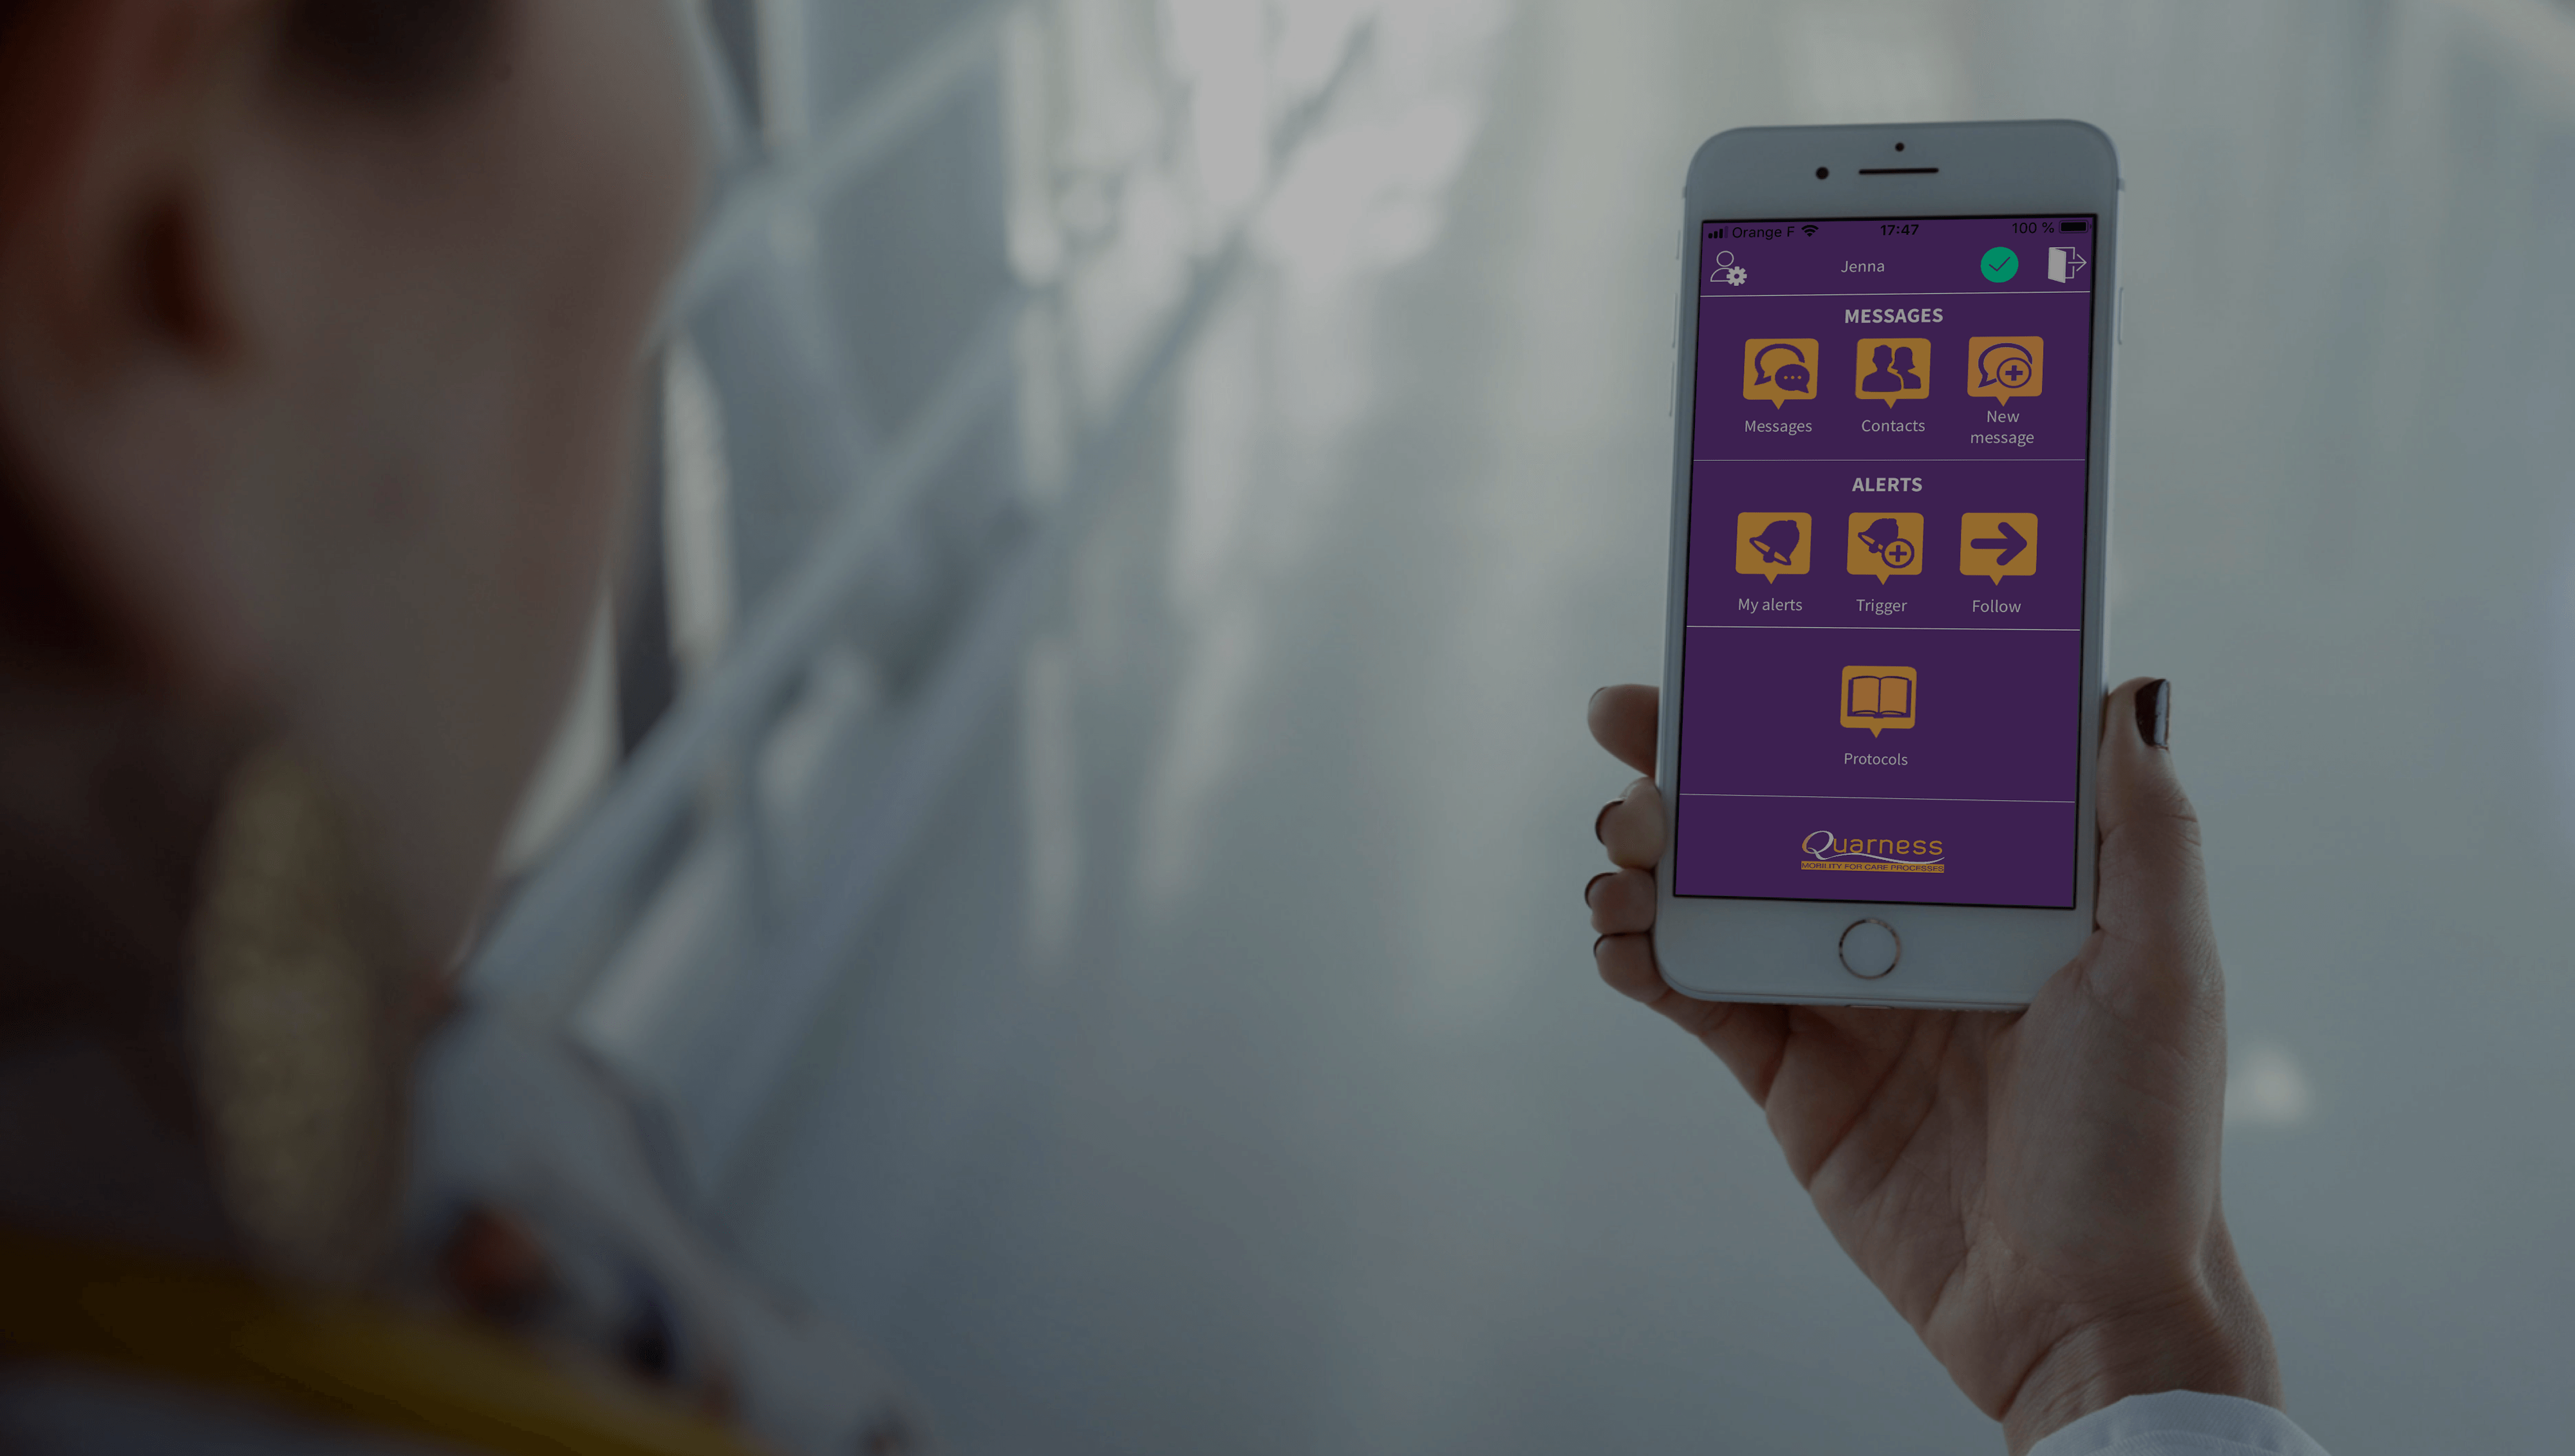 Quarness, mobile solution for daily coordination of care